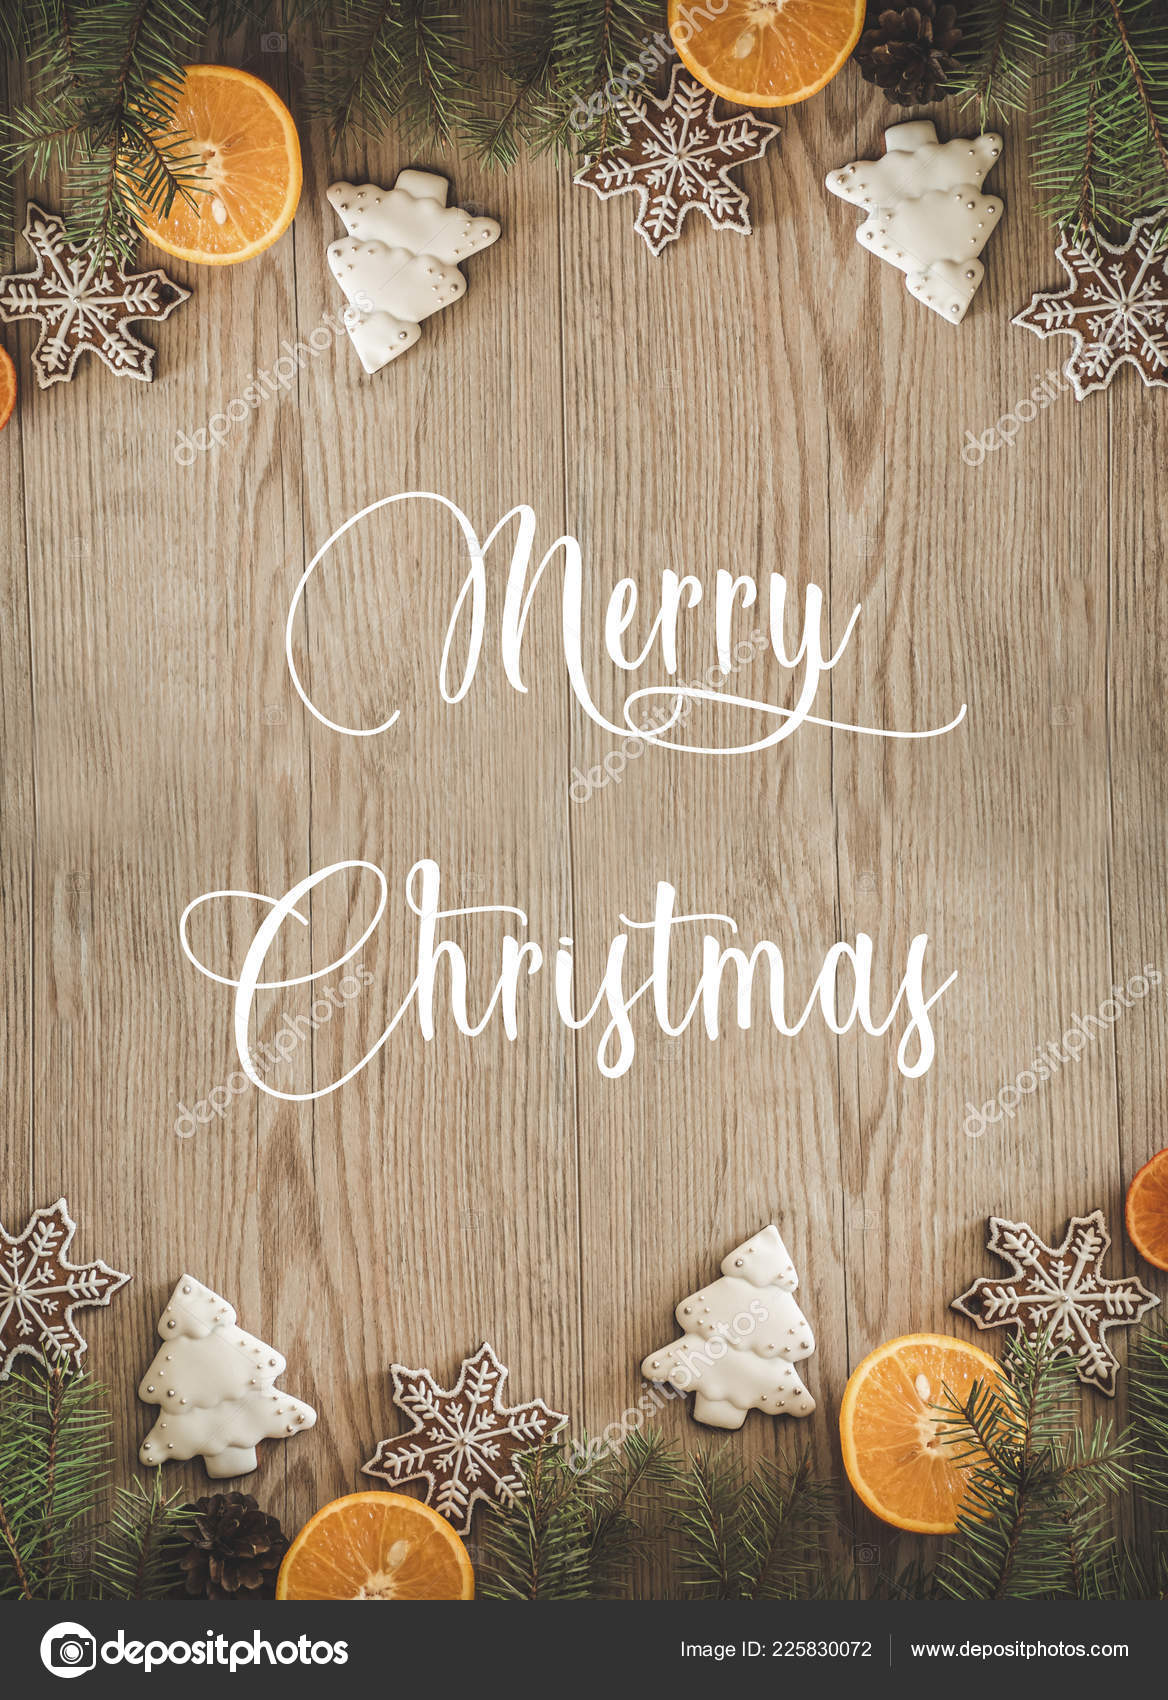 Christmas Holidays Pictures.Christmas Holidays Composition On Wooden Background With